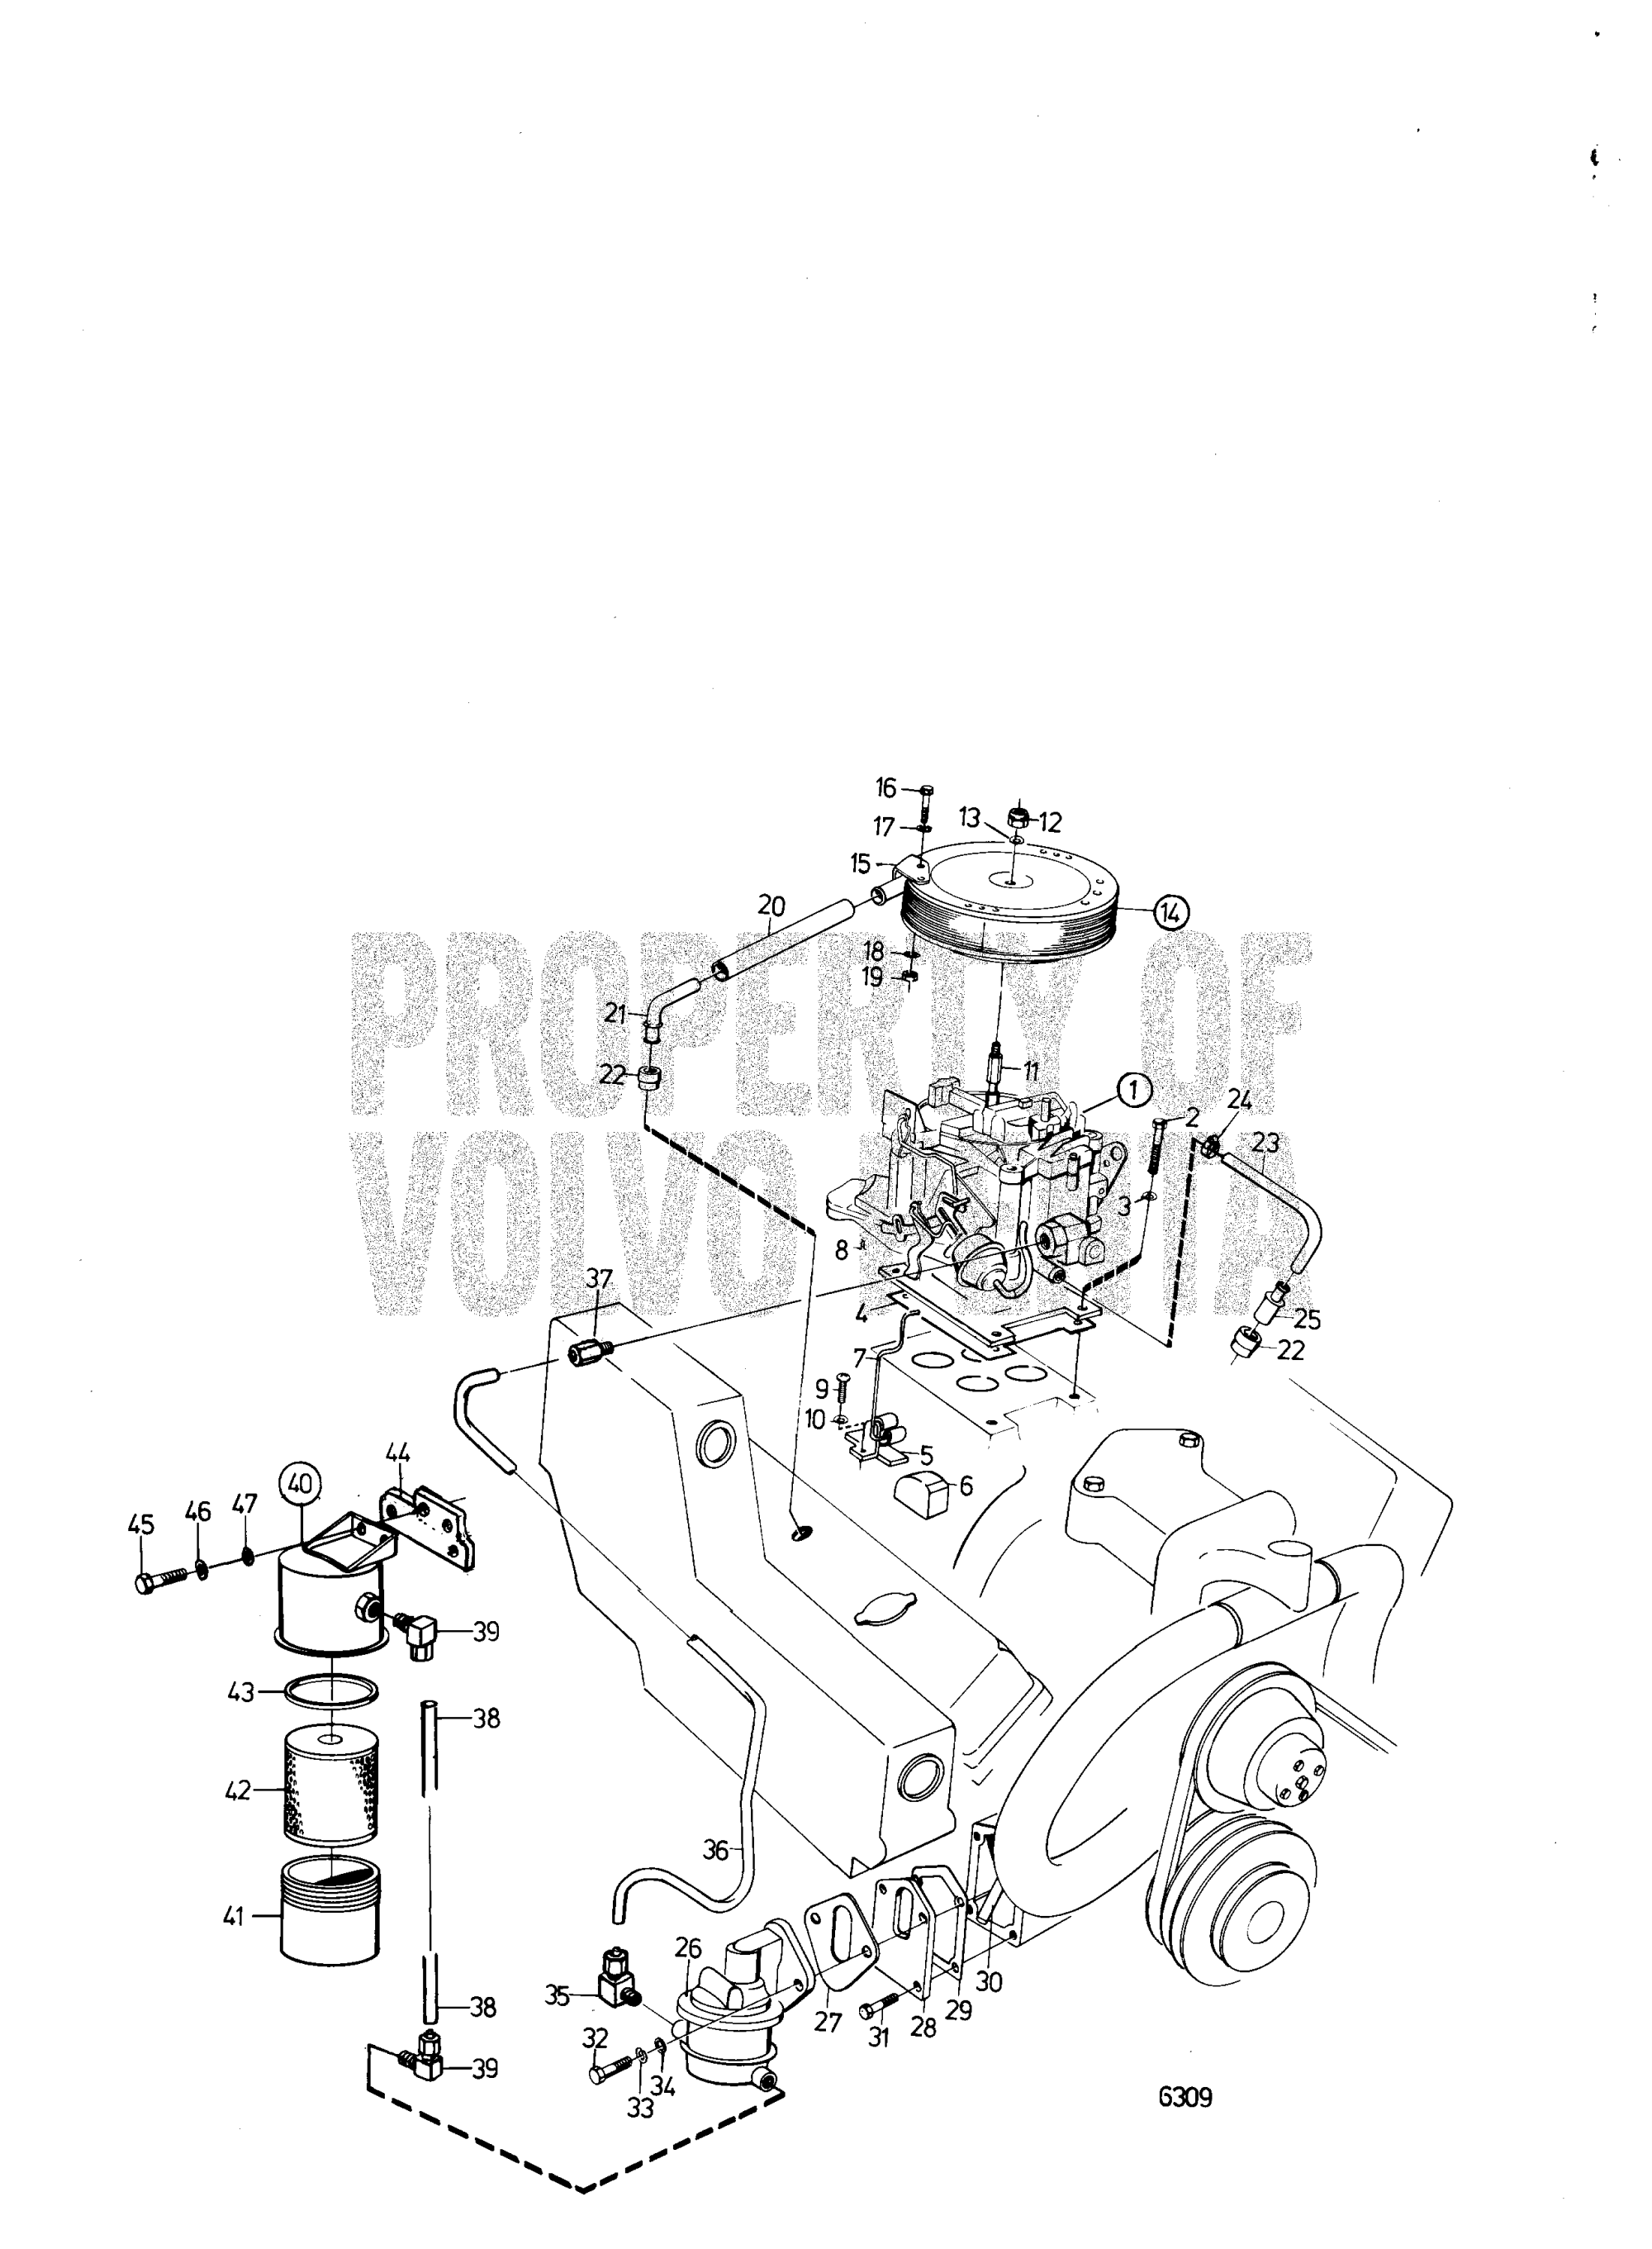 hight resolution of volvo marine gasoline engines aq200c aq200d aq225c aq225d aq255a aq255b fuel system b